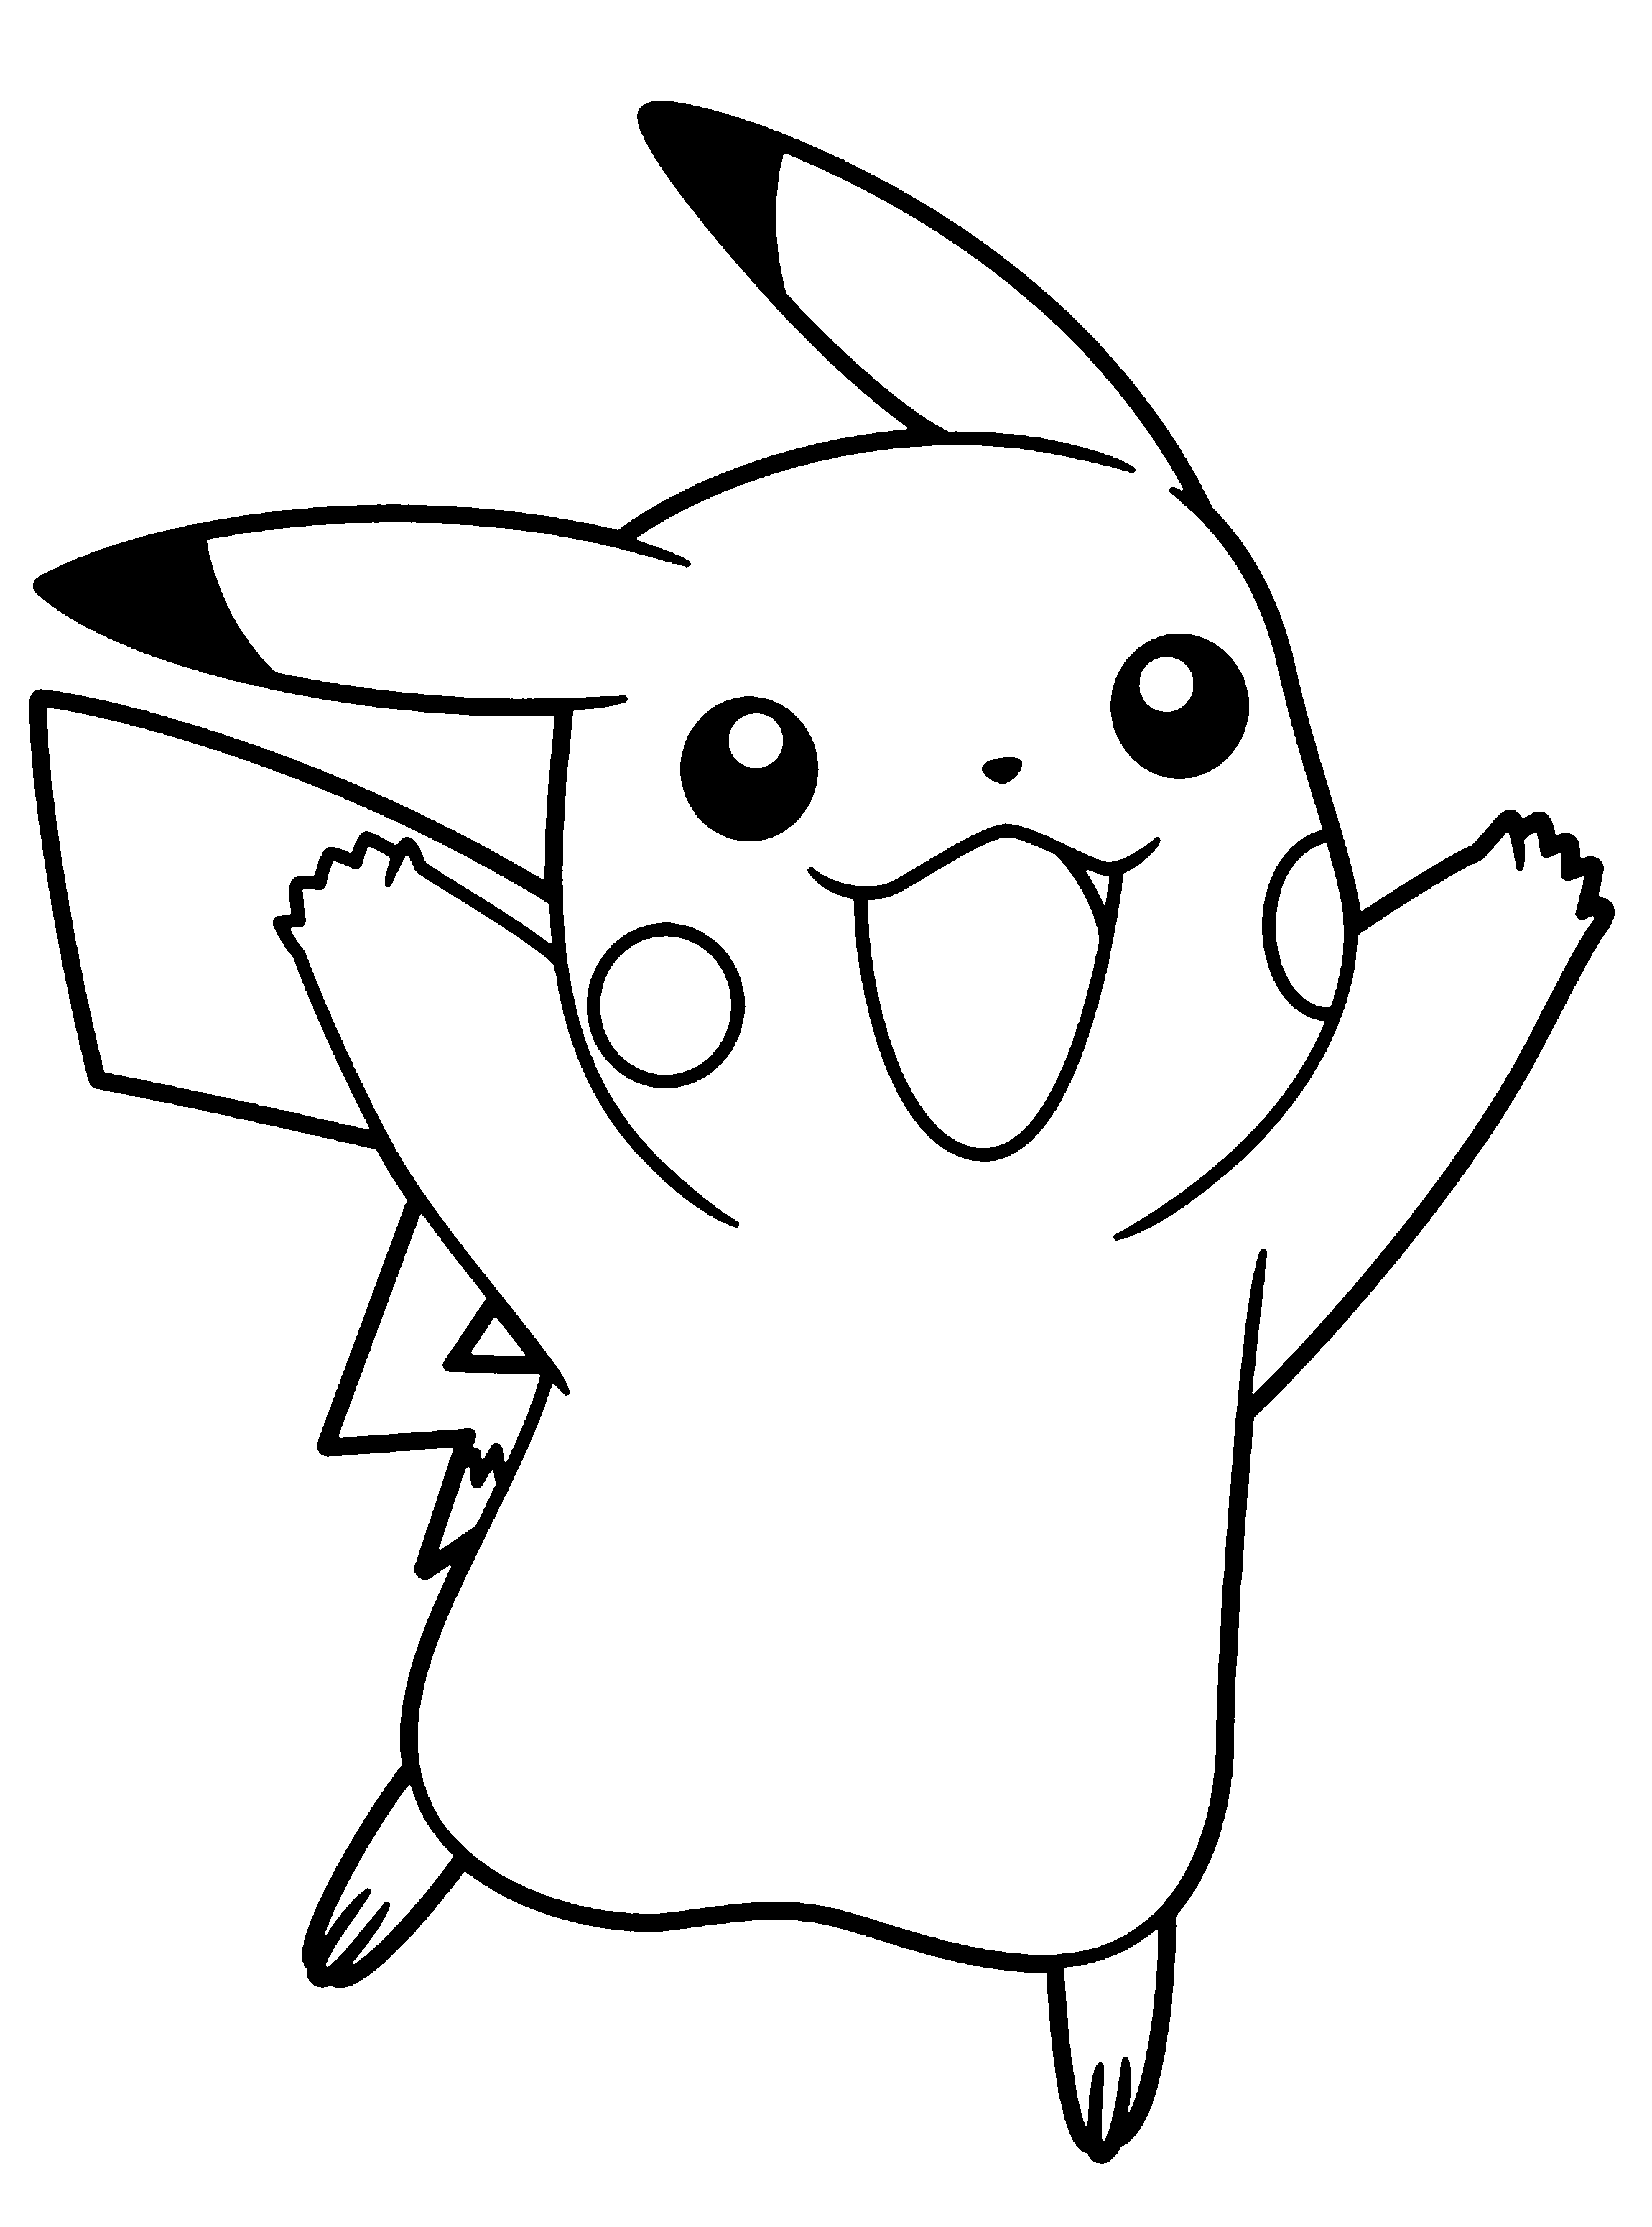 Coloring Book In : Pikachu coloring pages to download and print for free